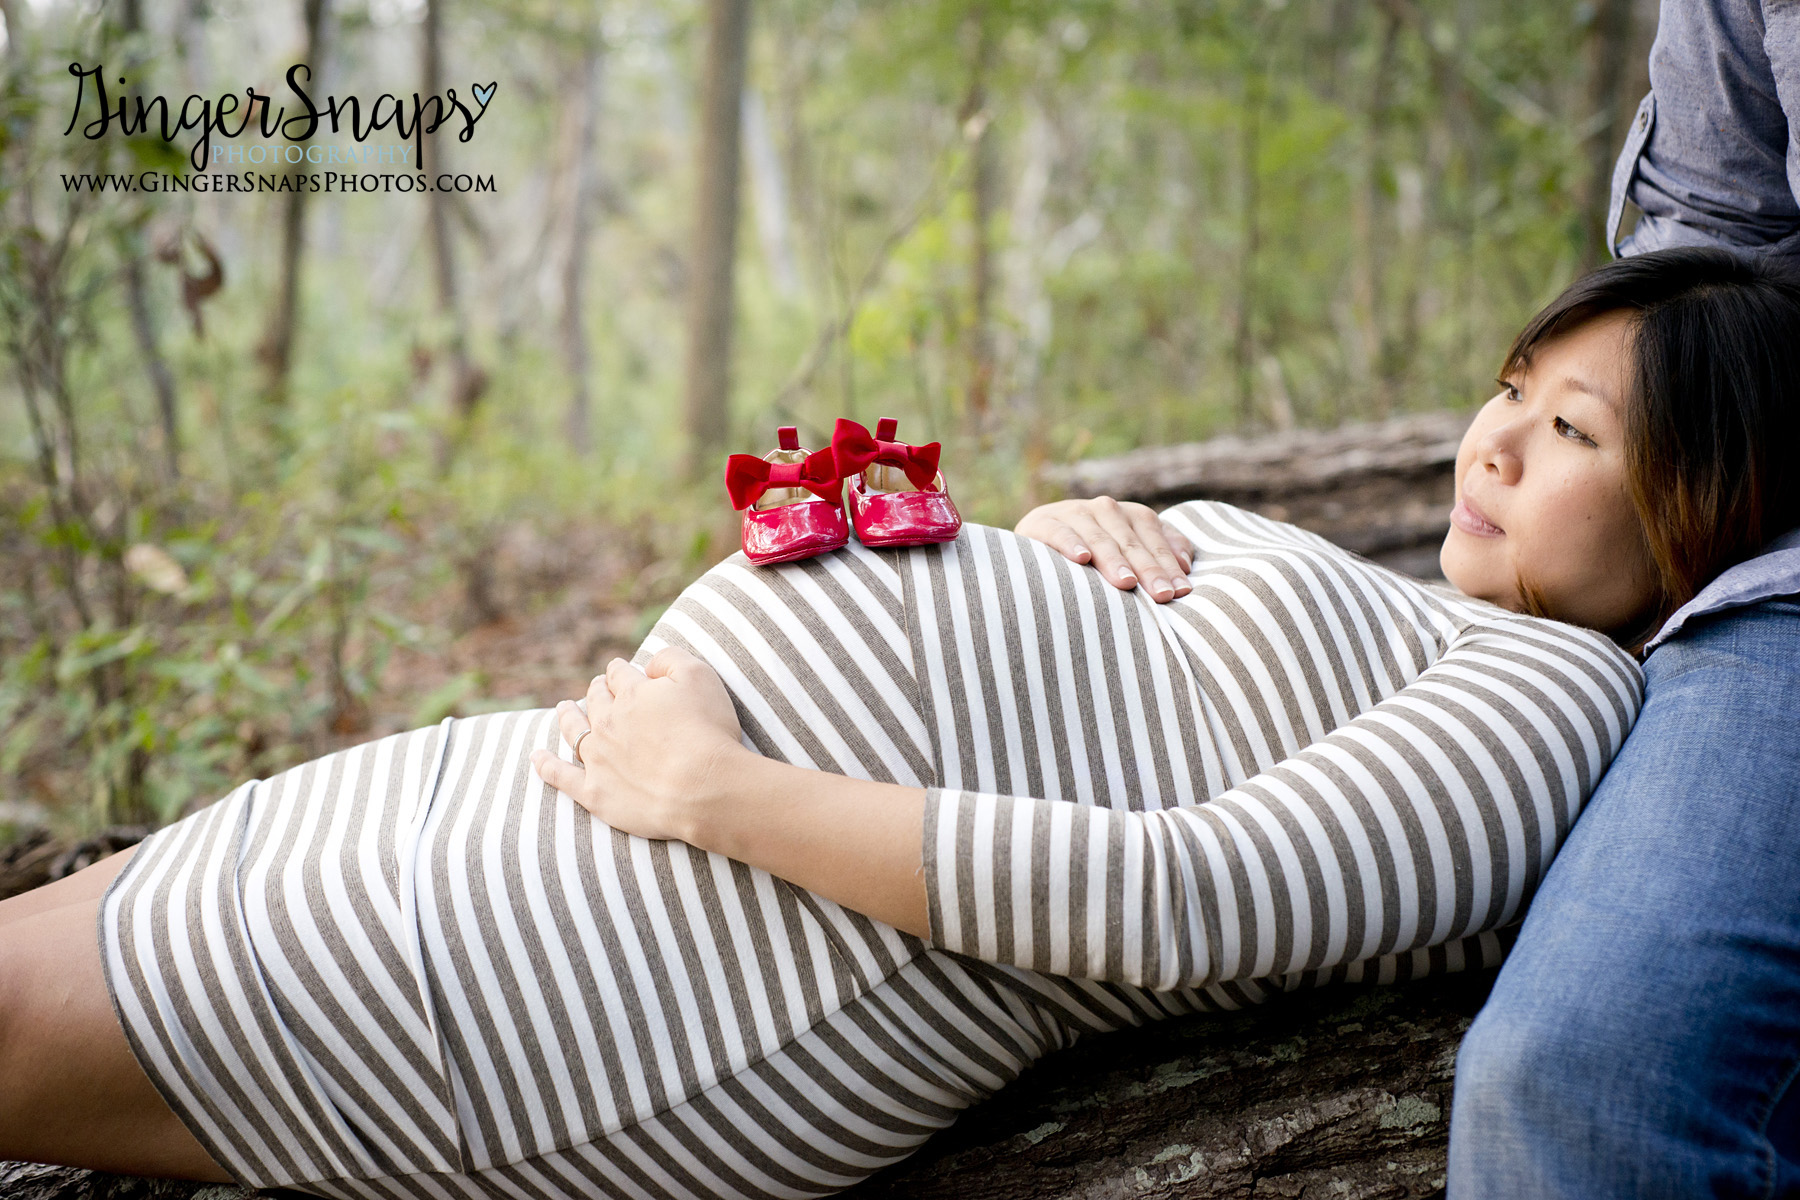 GingerSnaps Photography - 71